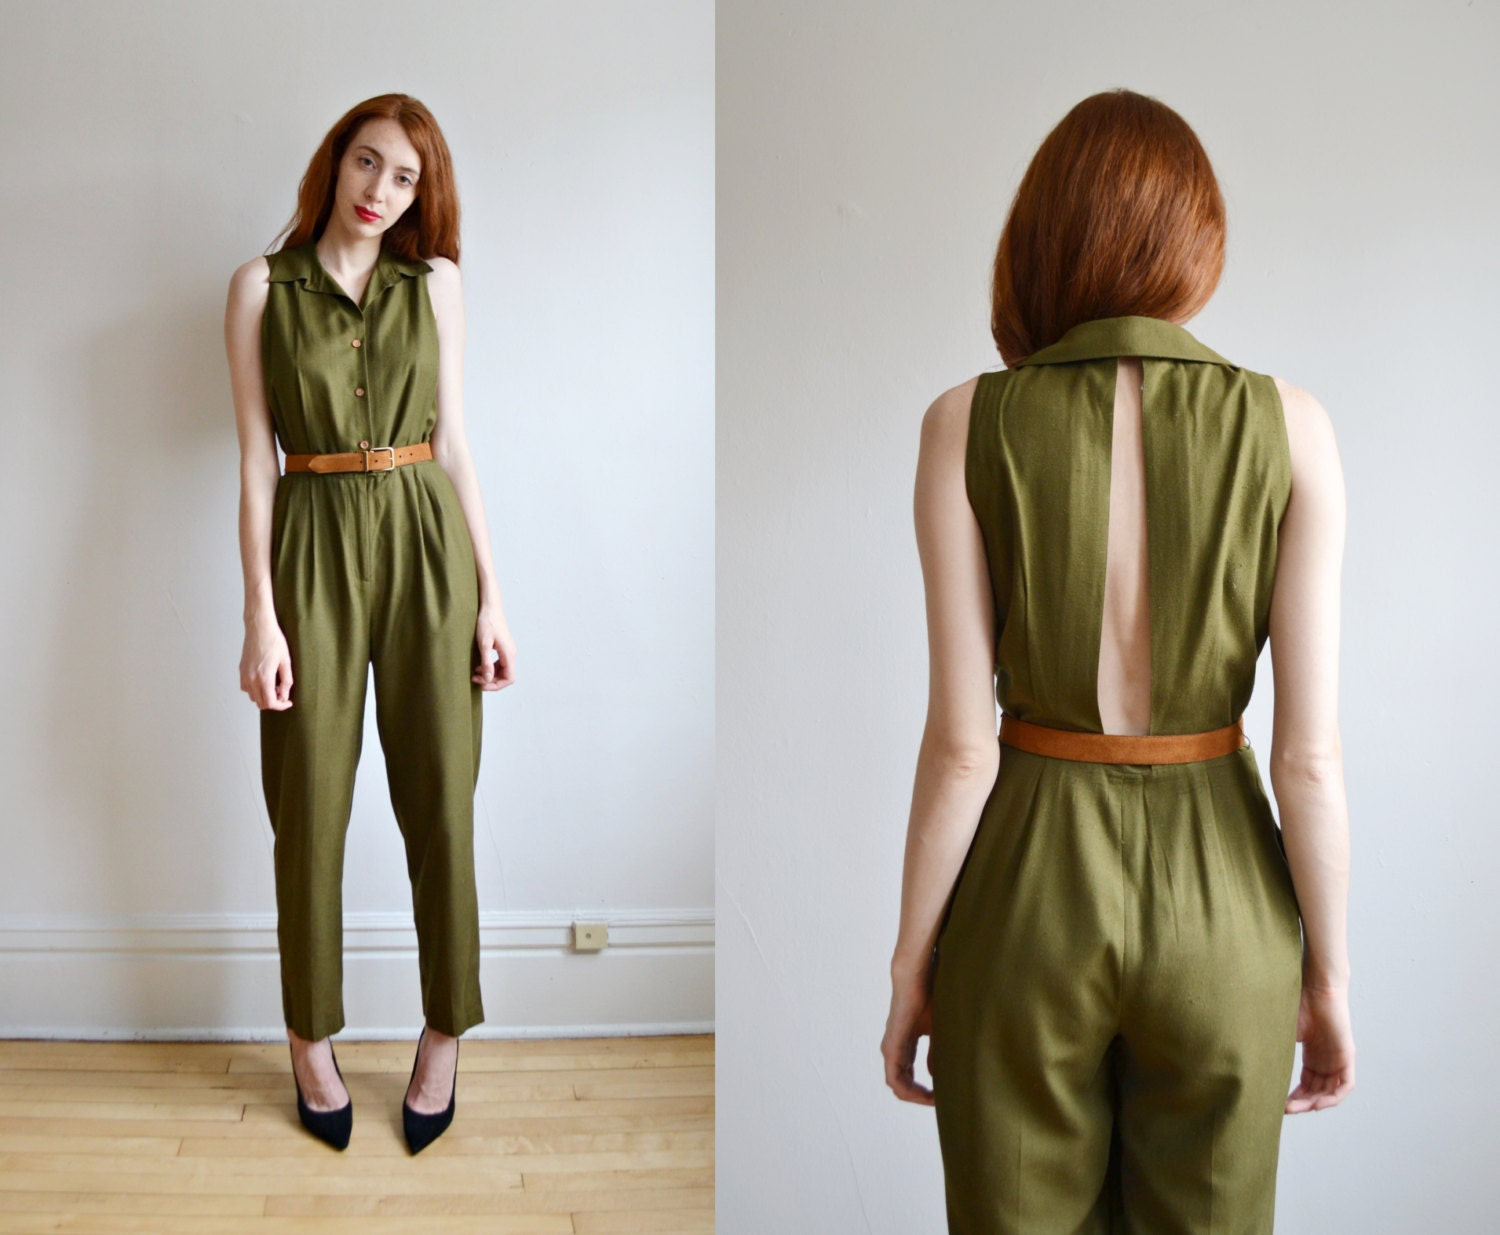 Women's Jumpsuits from topinsurances.ga From beach-ready, tropical-print strapless rompers for vacations to pant-length chevron-print jumpsuits in wear-to-work styles, you can find a wide selection of women's jumpsuits at topinsurances.ga in many styles, brands, colors, patterns, and sizes.